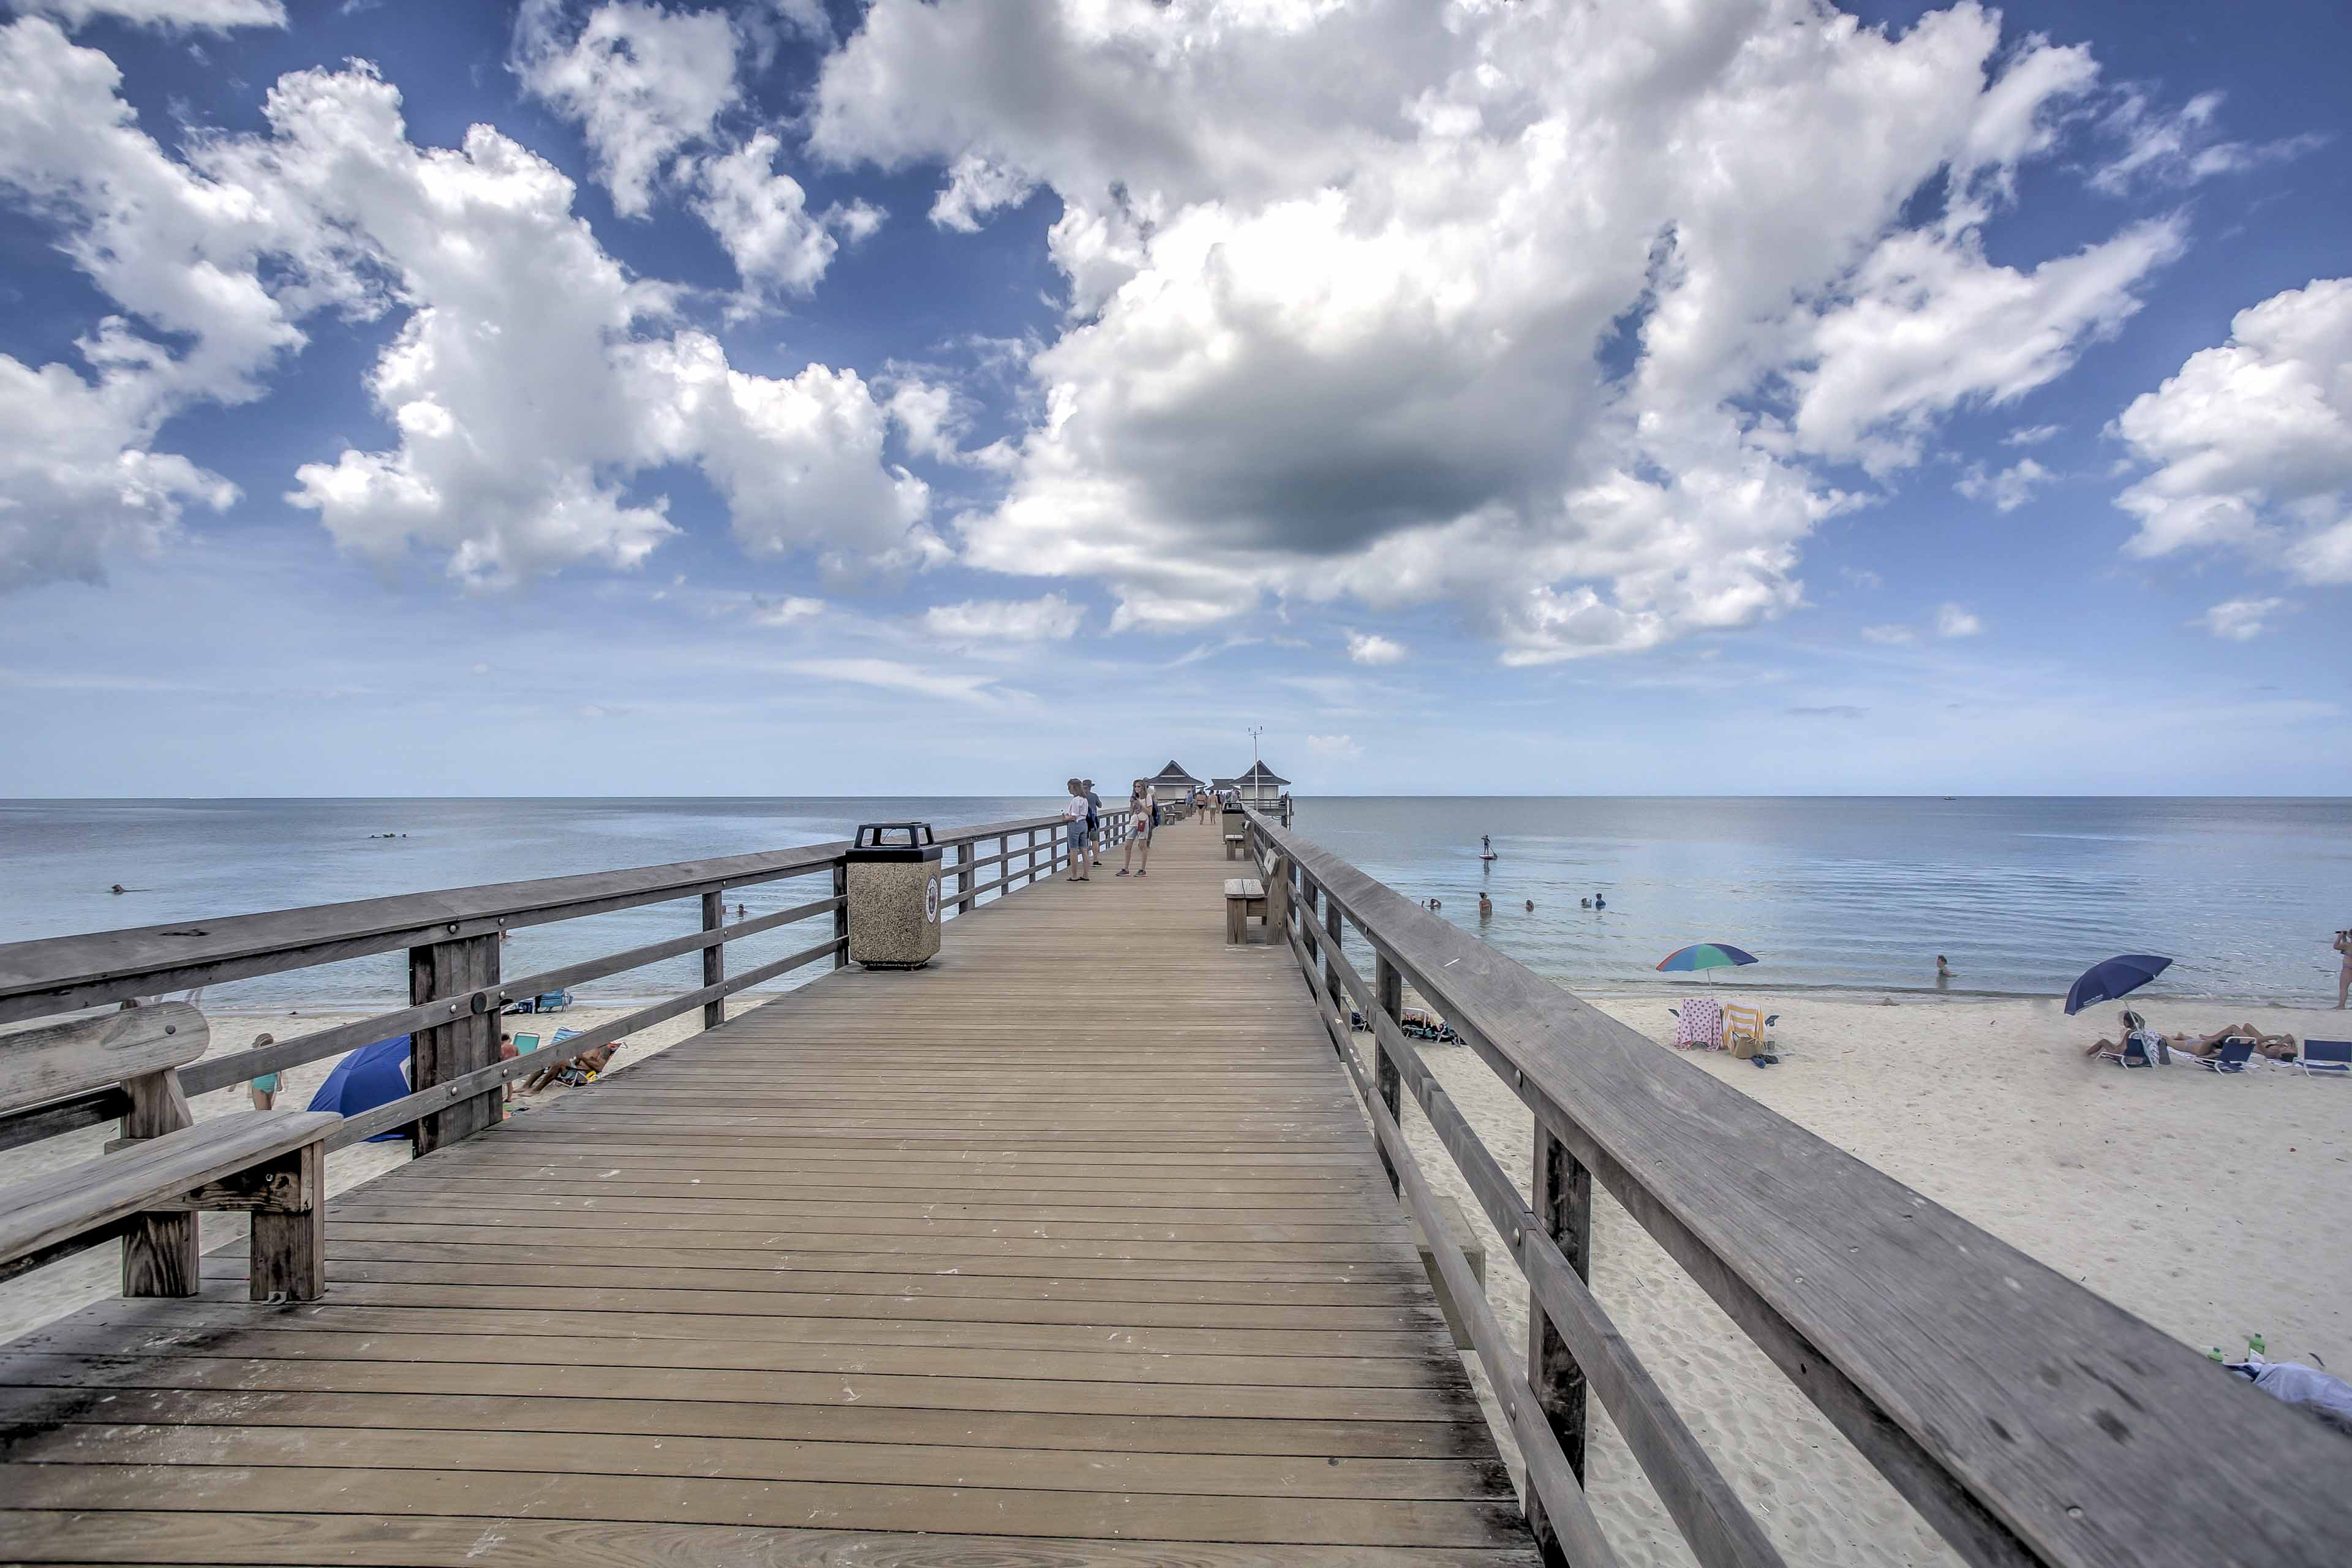 Make it to the Naples Pier in mere minutes!